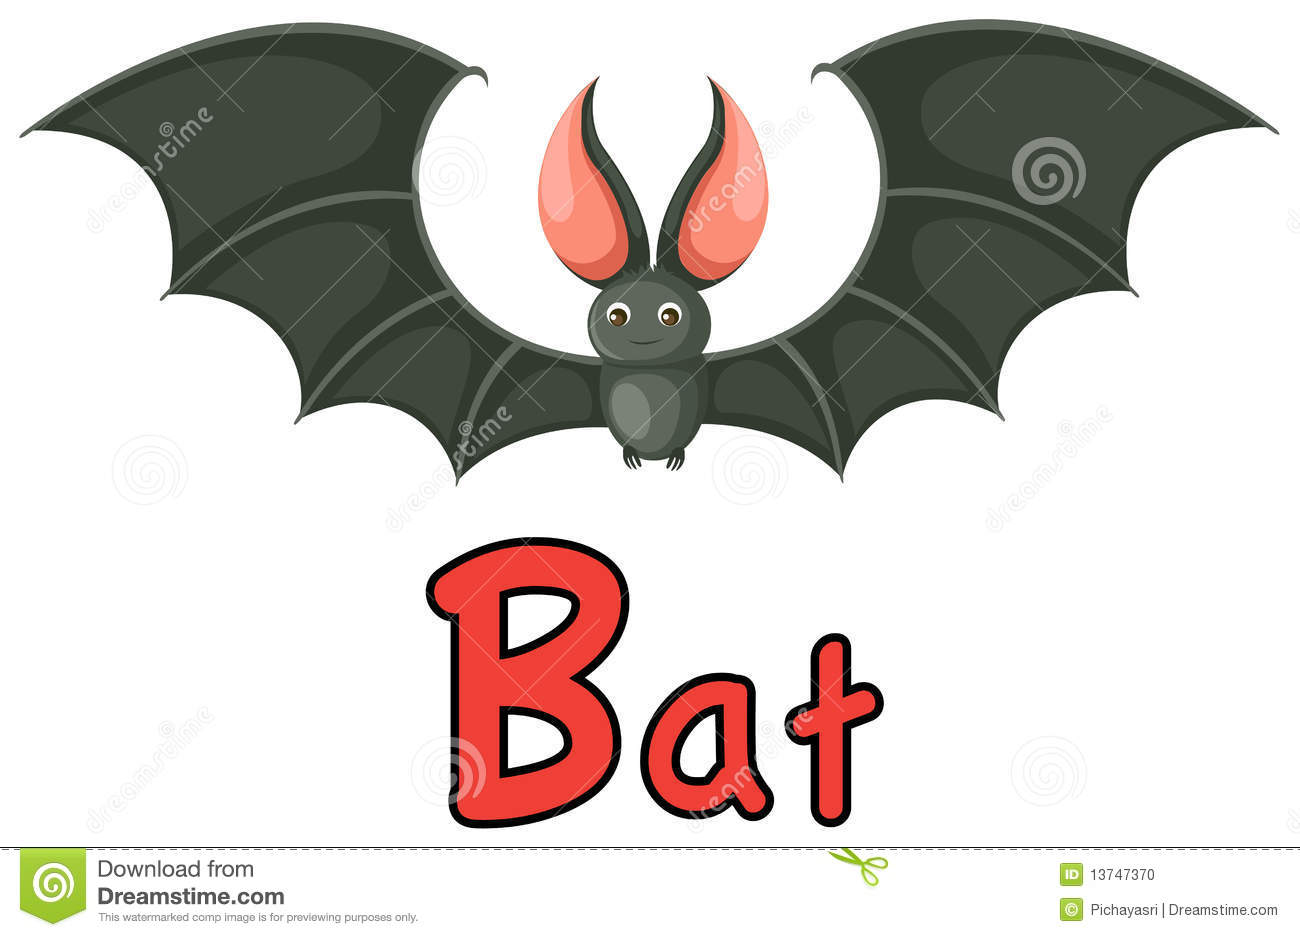 Animal Alphabet B For Bat Stock Photo  Image: 13747370